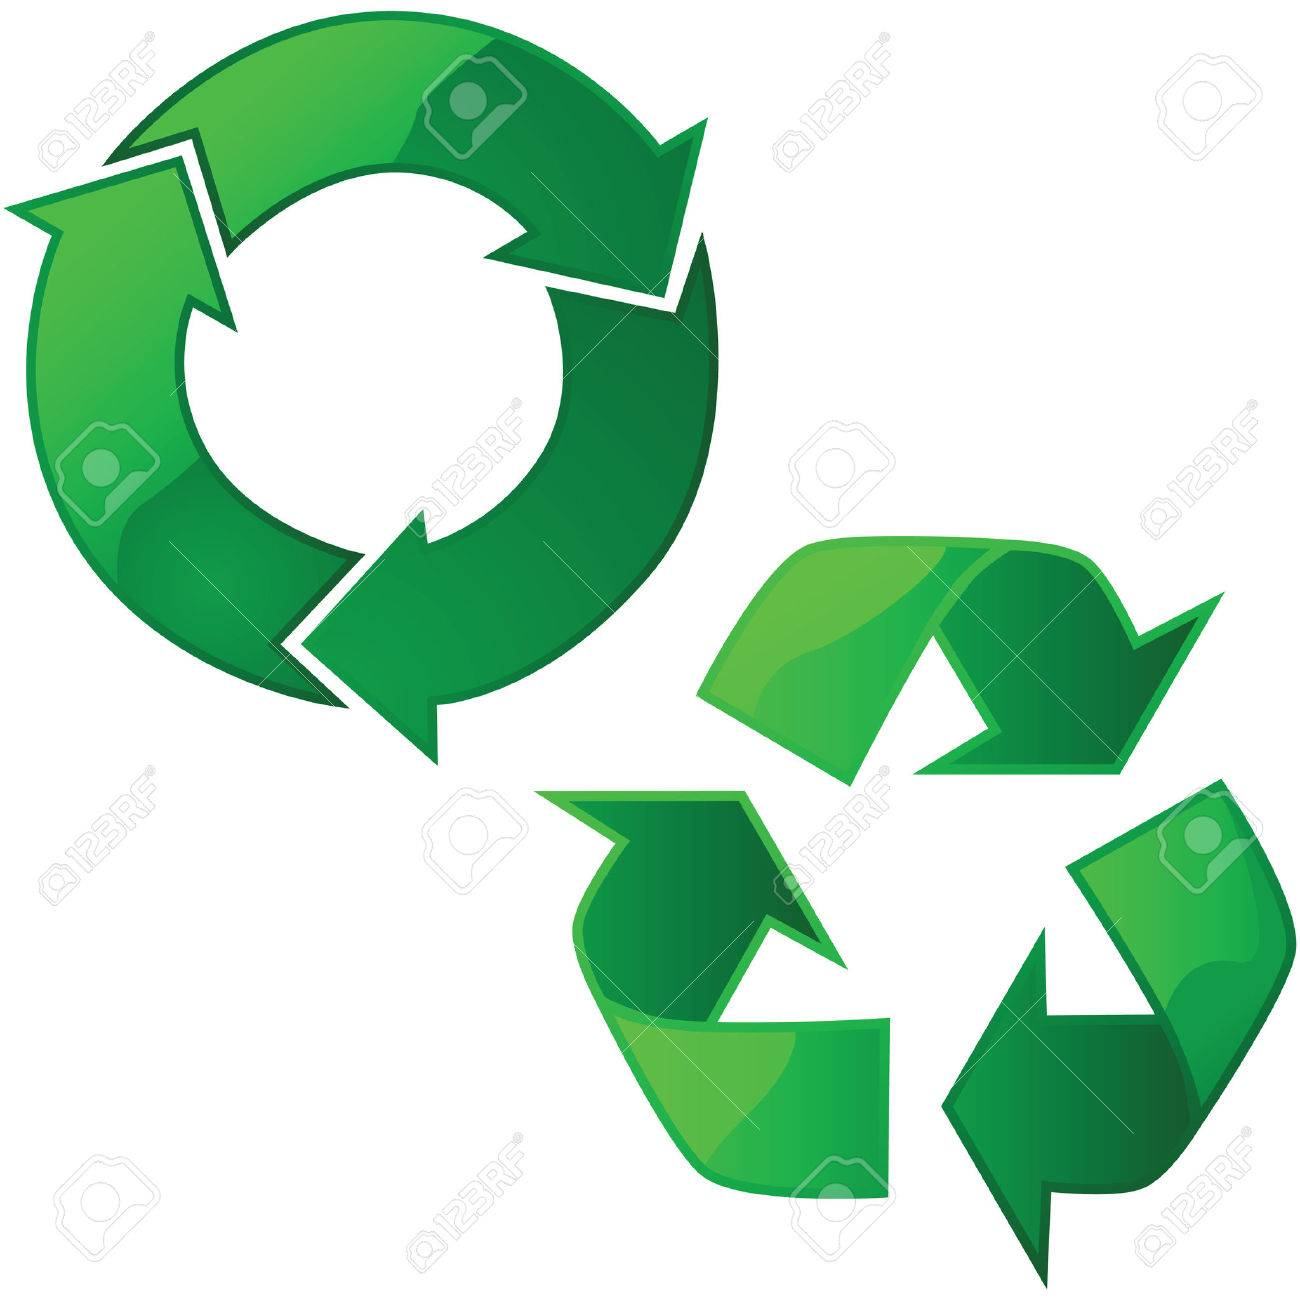 Illustration of two glossy recycling signs Stock Vector - 7420121